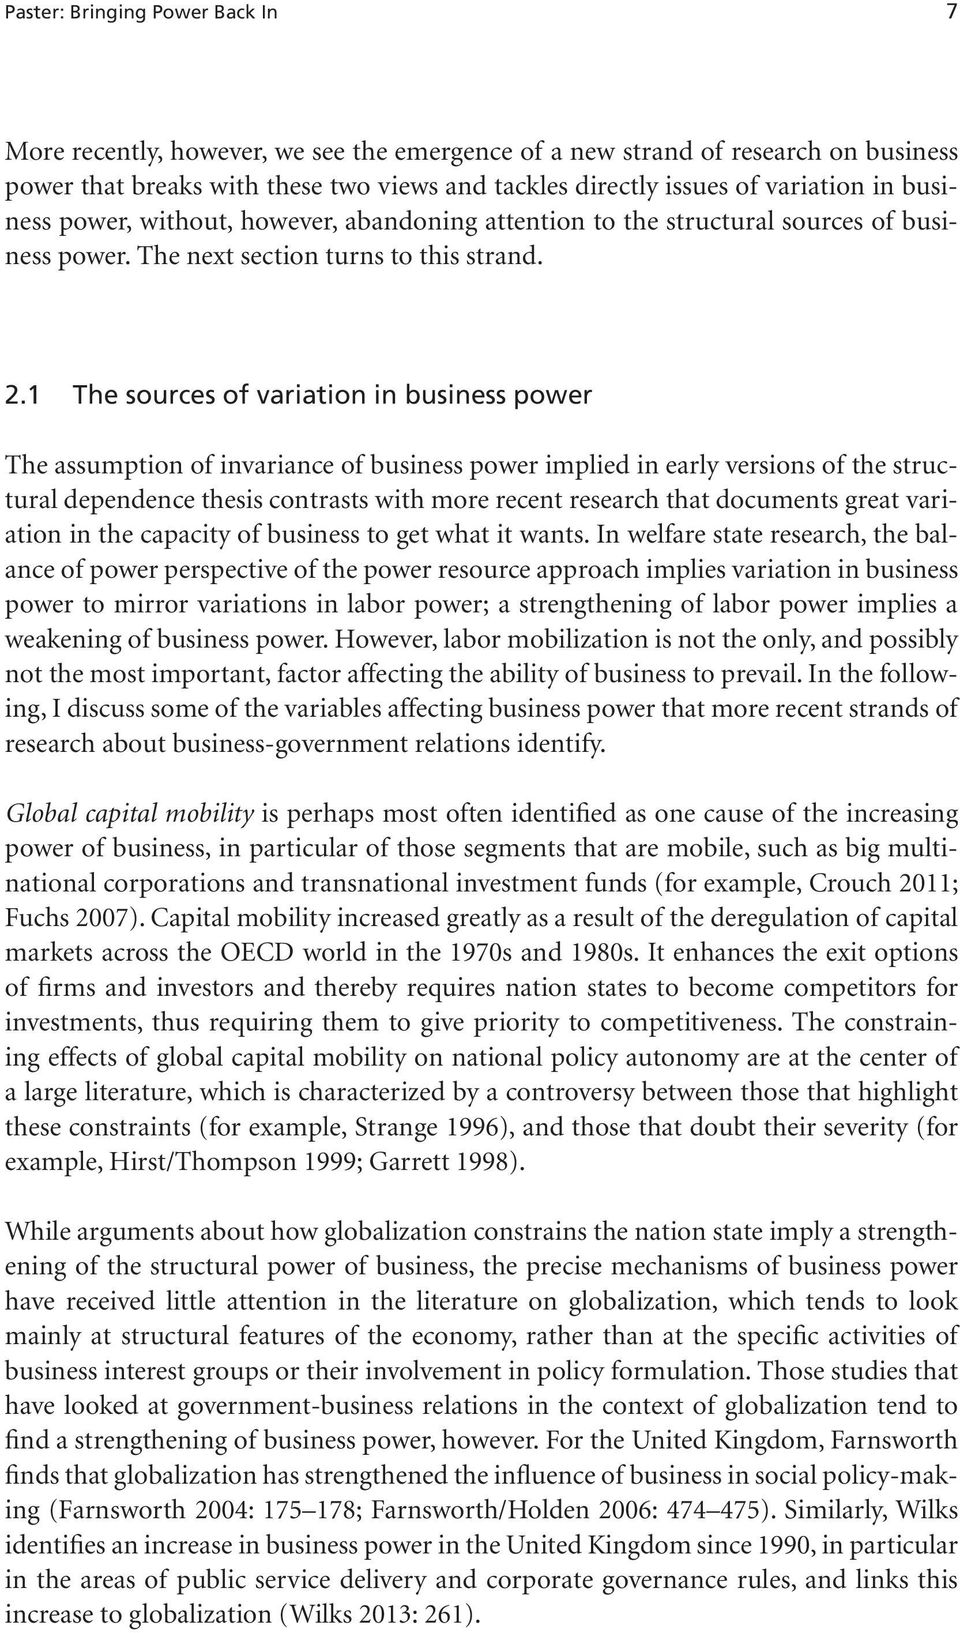 1 The sources of variation in business power The assumption of invariance of business power implied in early versions of the structural dependence thesis contrasts with more recent research that